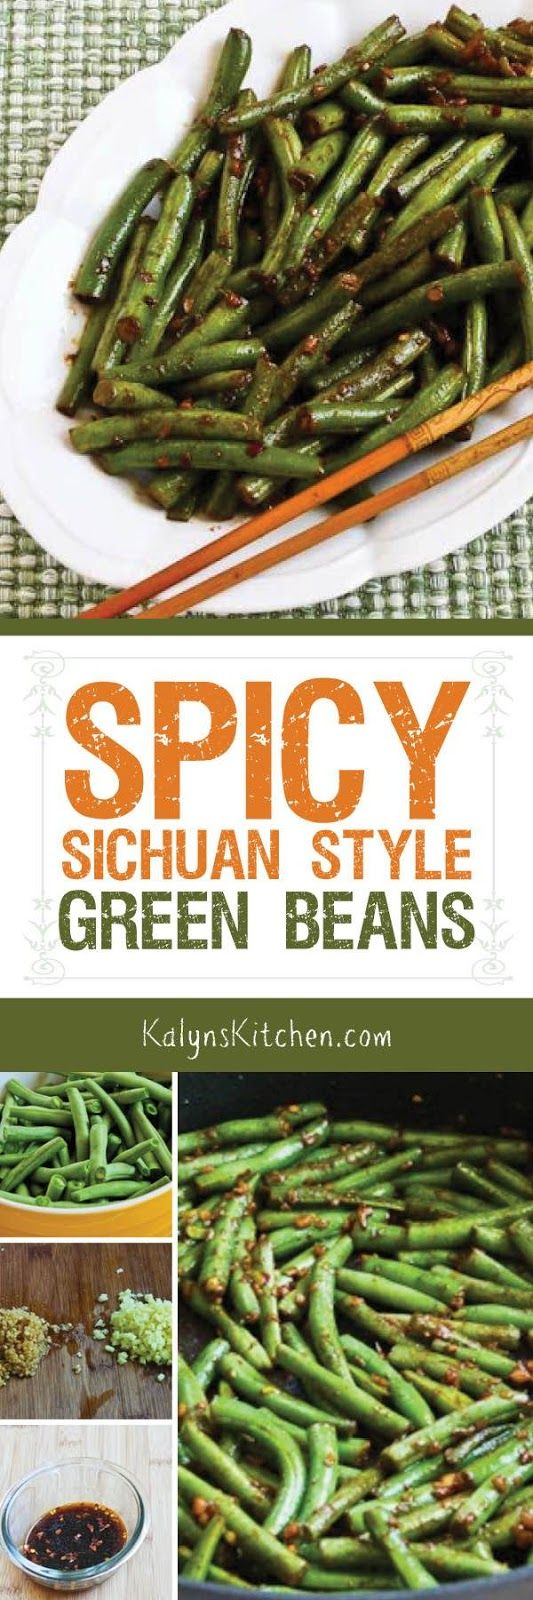 Spicy Sichuan Style Green Beans [from KalynsKitchen.com] are low-carb, Keto, gluten-free, South Beach Diet friendly, and Vegan!